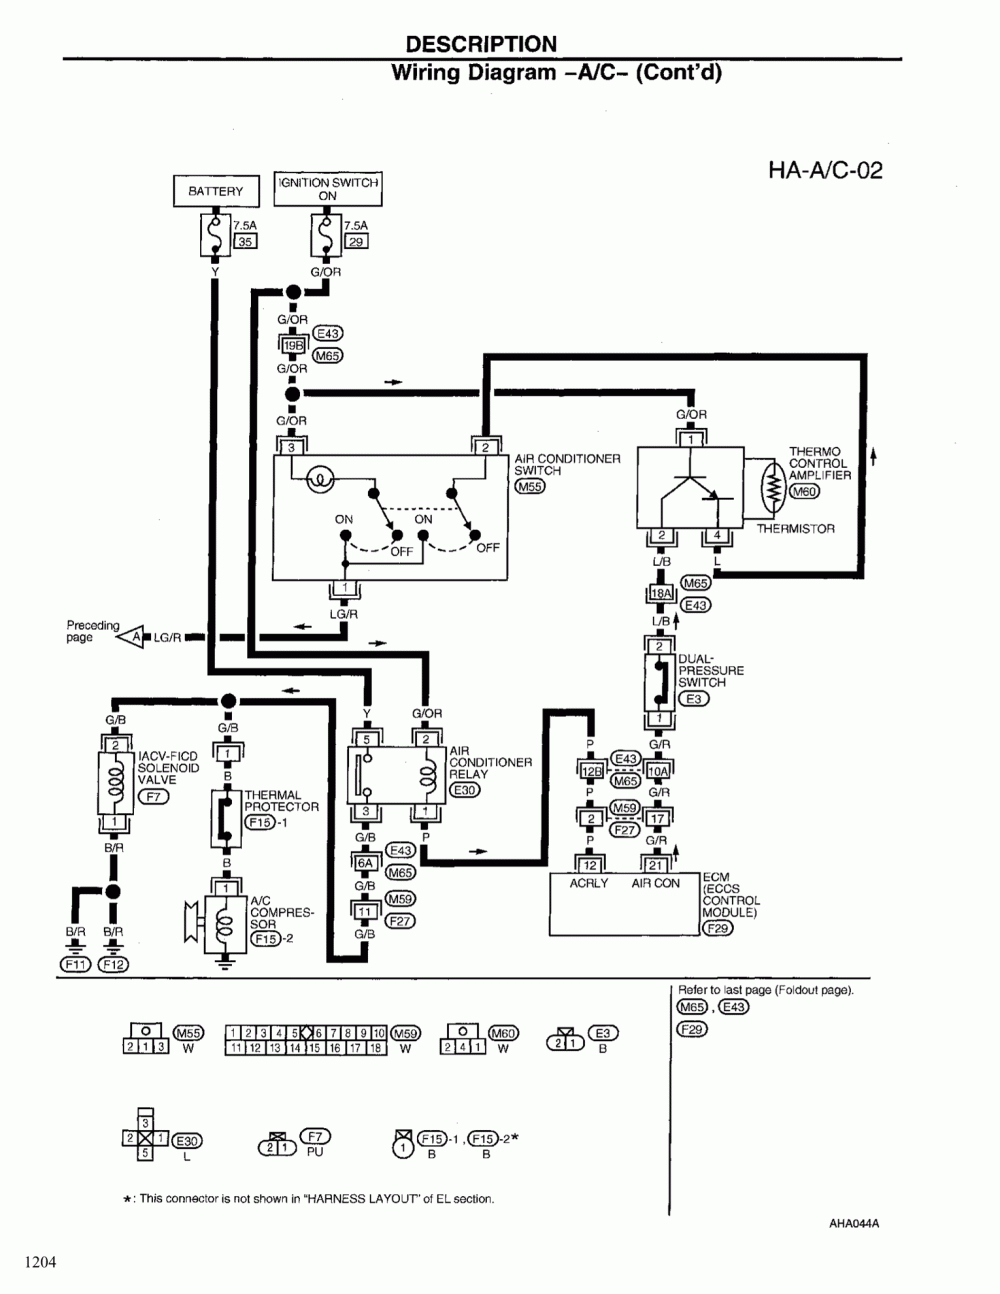 2000 nissan frontier wiring diagram collection wiring diagram sample2000 nissan frontier wiring diagram collection 2006 nissan frontier engine diagram 2004 nissan frontier wiring